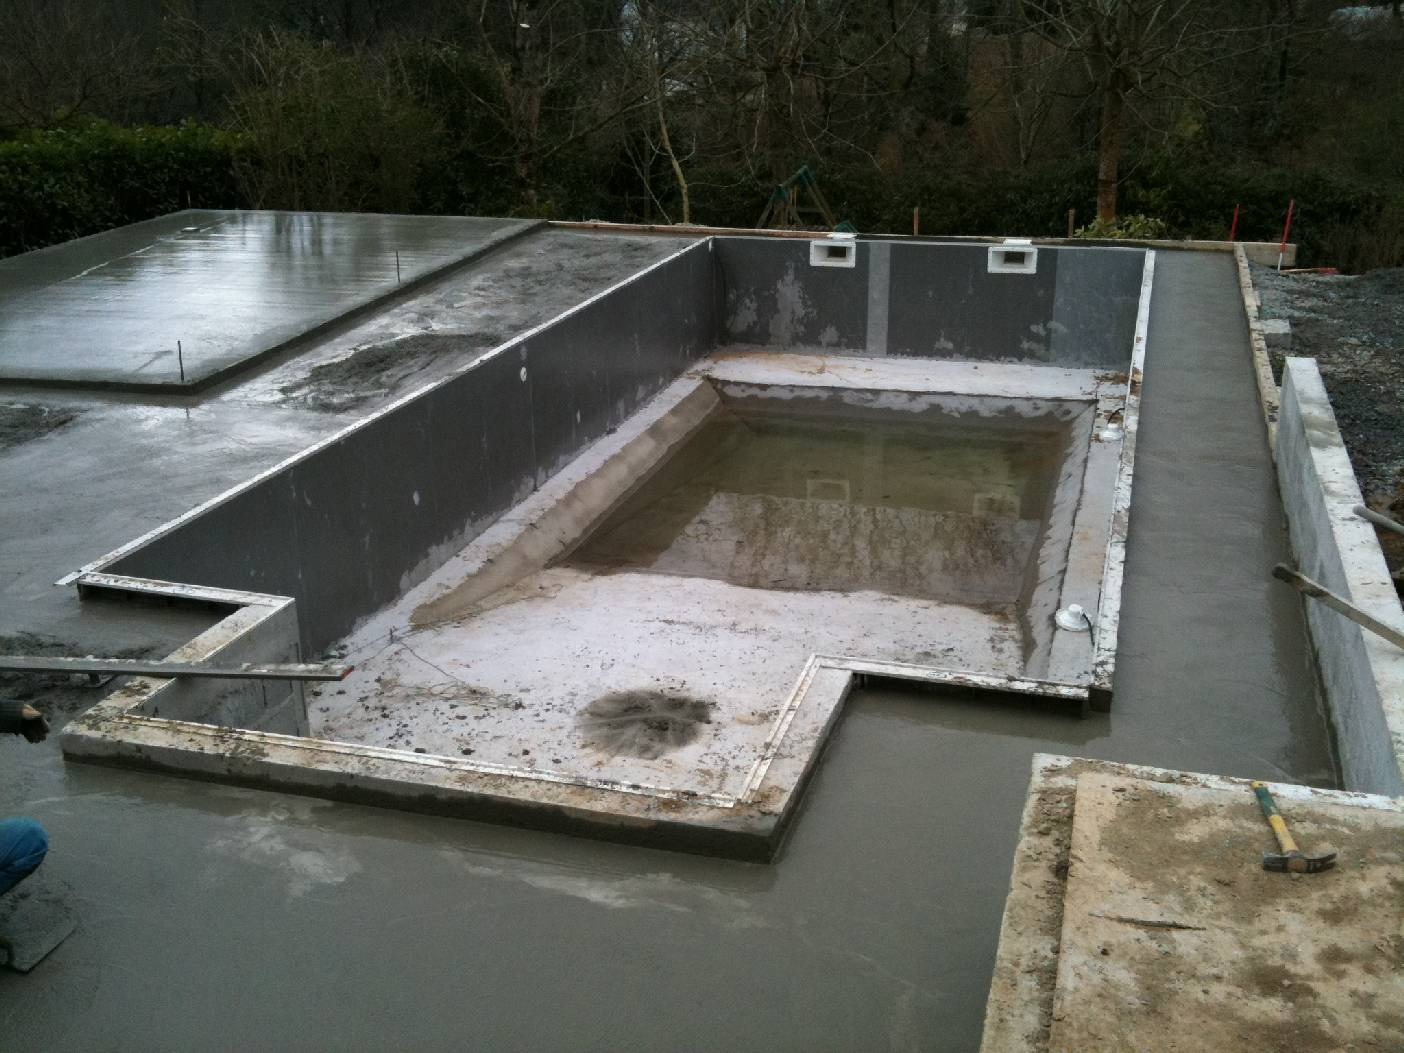 Am nagement des abords d 39 une piscine quimper goalabre construction for Abords de piscine